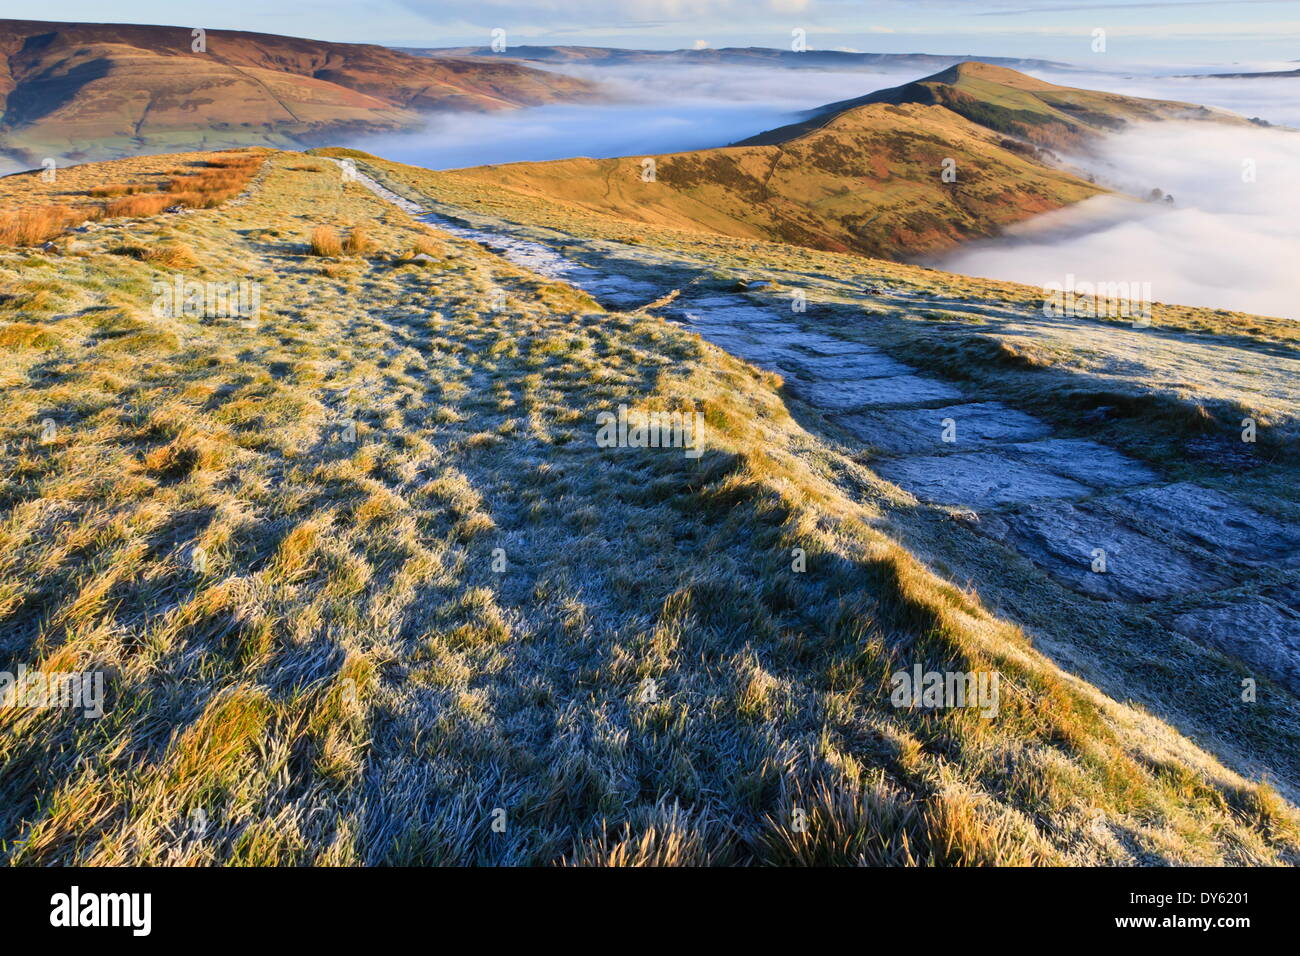 Fog and frost, Edale and Hope Valleys, Great Ridge Hollins Cross and Mam Tor, Peak District National Park, Derbyshire, - Stock Image